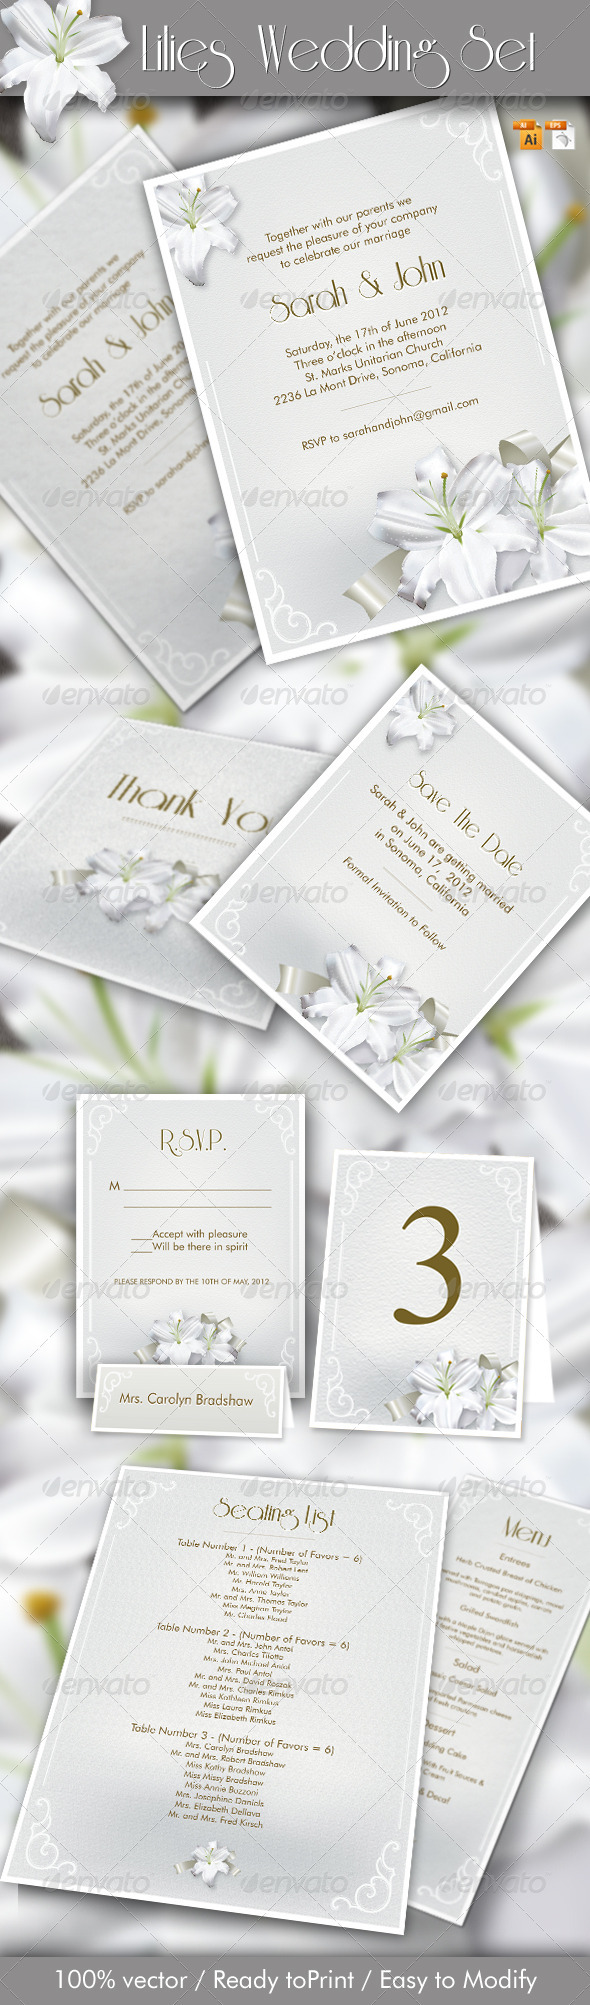 Lilies Wedding Set - Weddings Cards & Invites